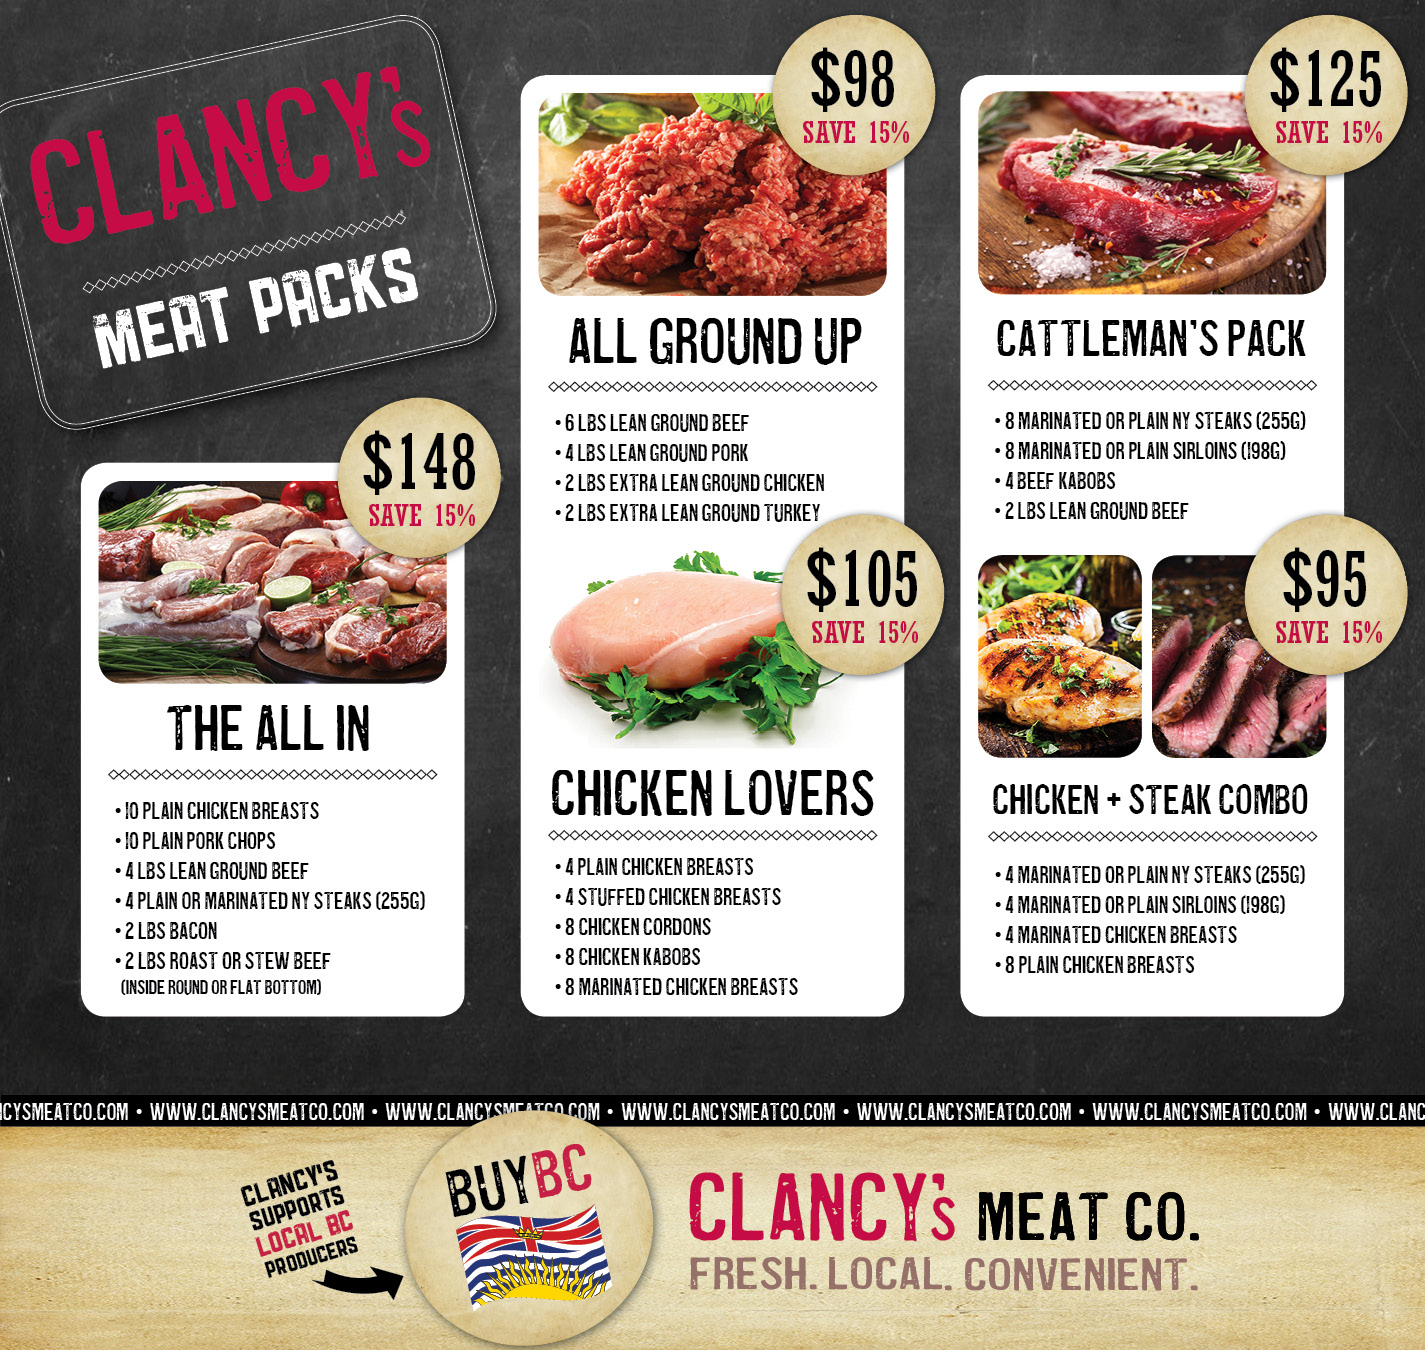 Clancys Meat Pack 2017.jpg